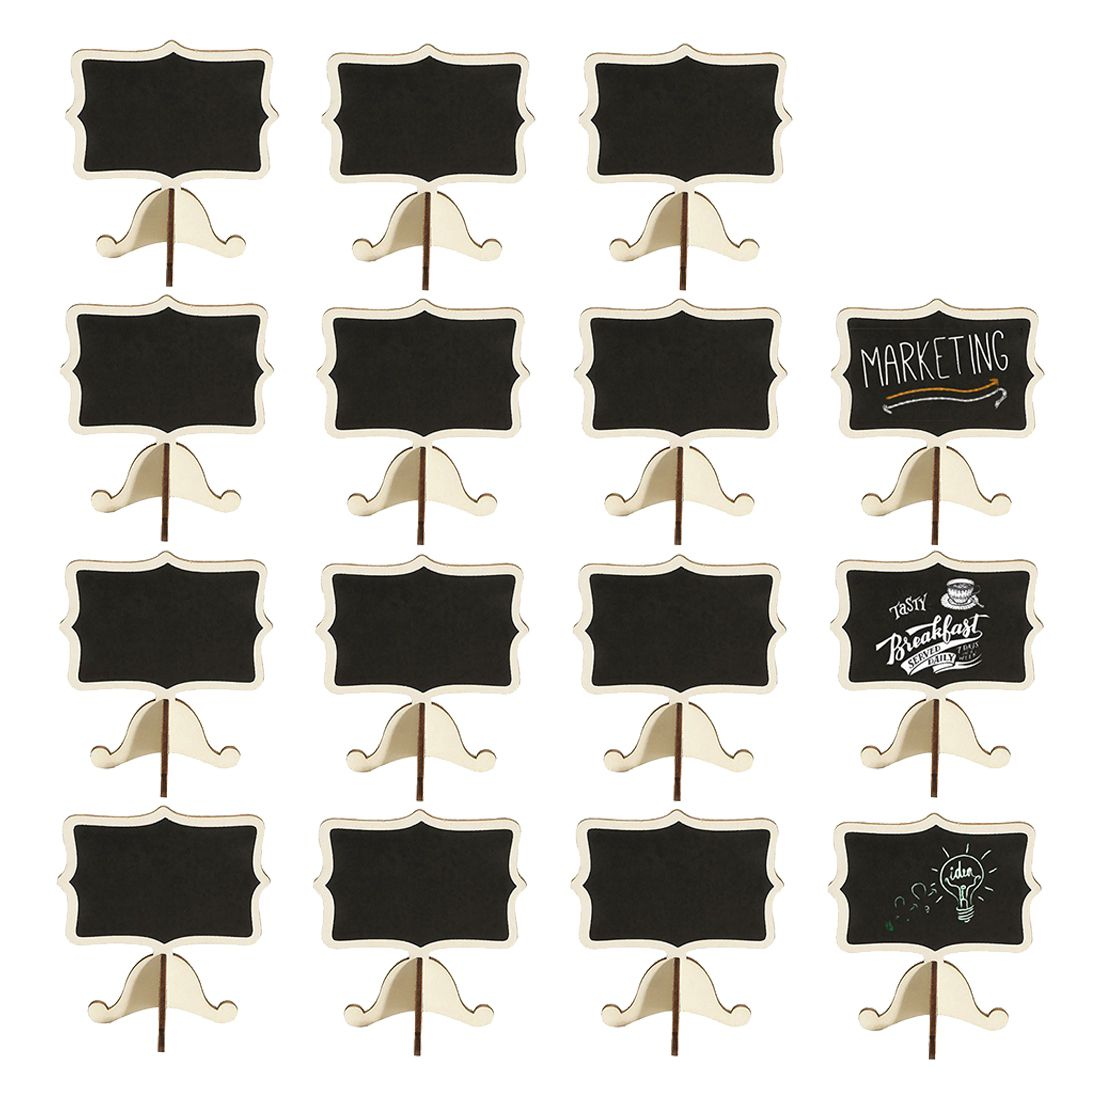 15 Pack Mini Chalkboards Place Cards With Easel Stand Wood Rectangle Chalkboard Signs For Wedding Birthday Parties Table Numbers